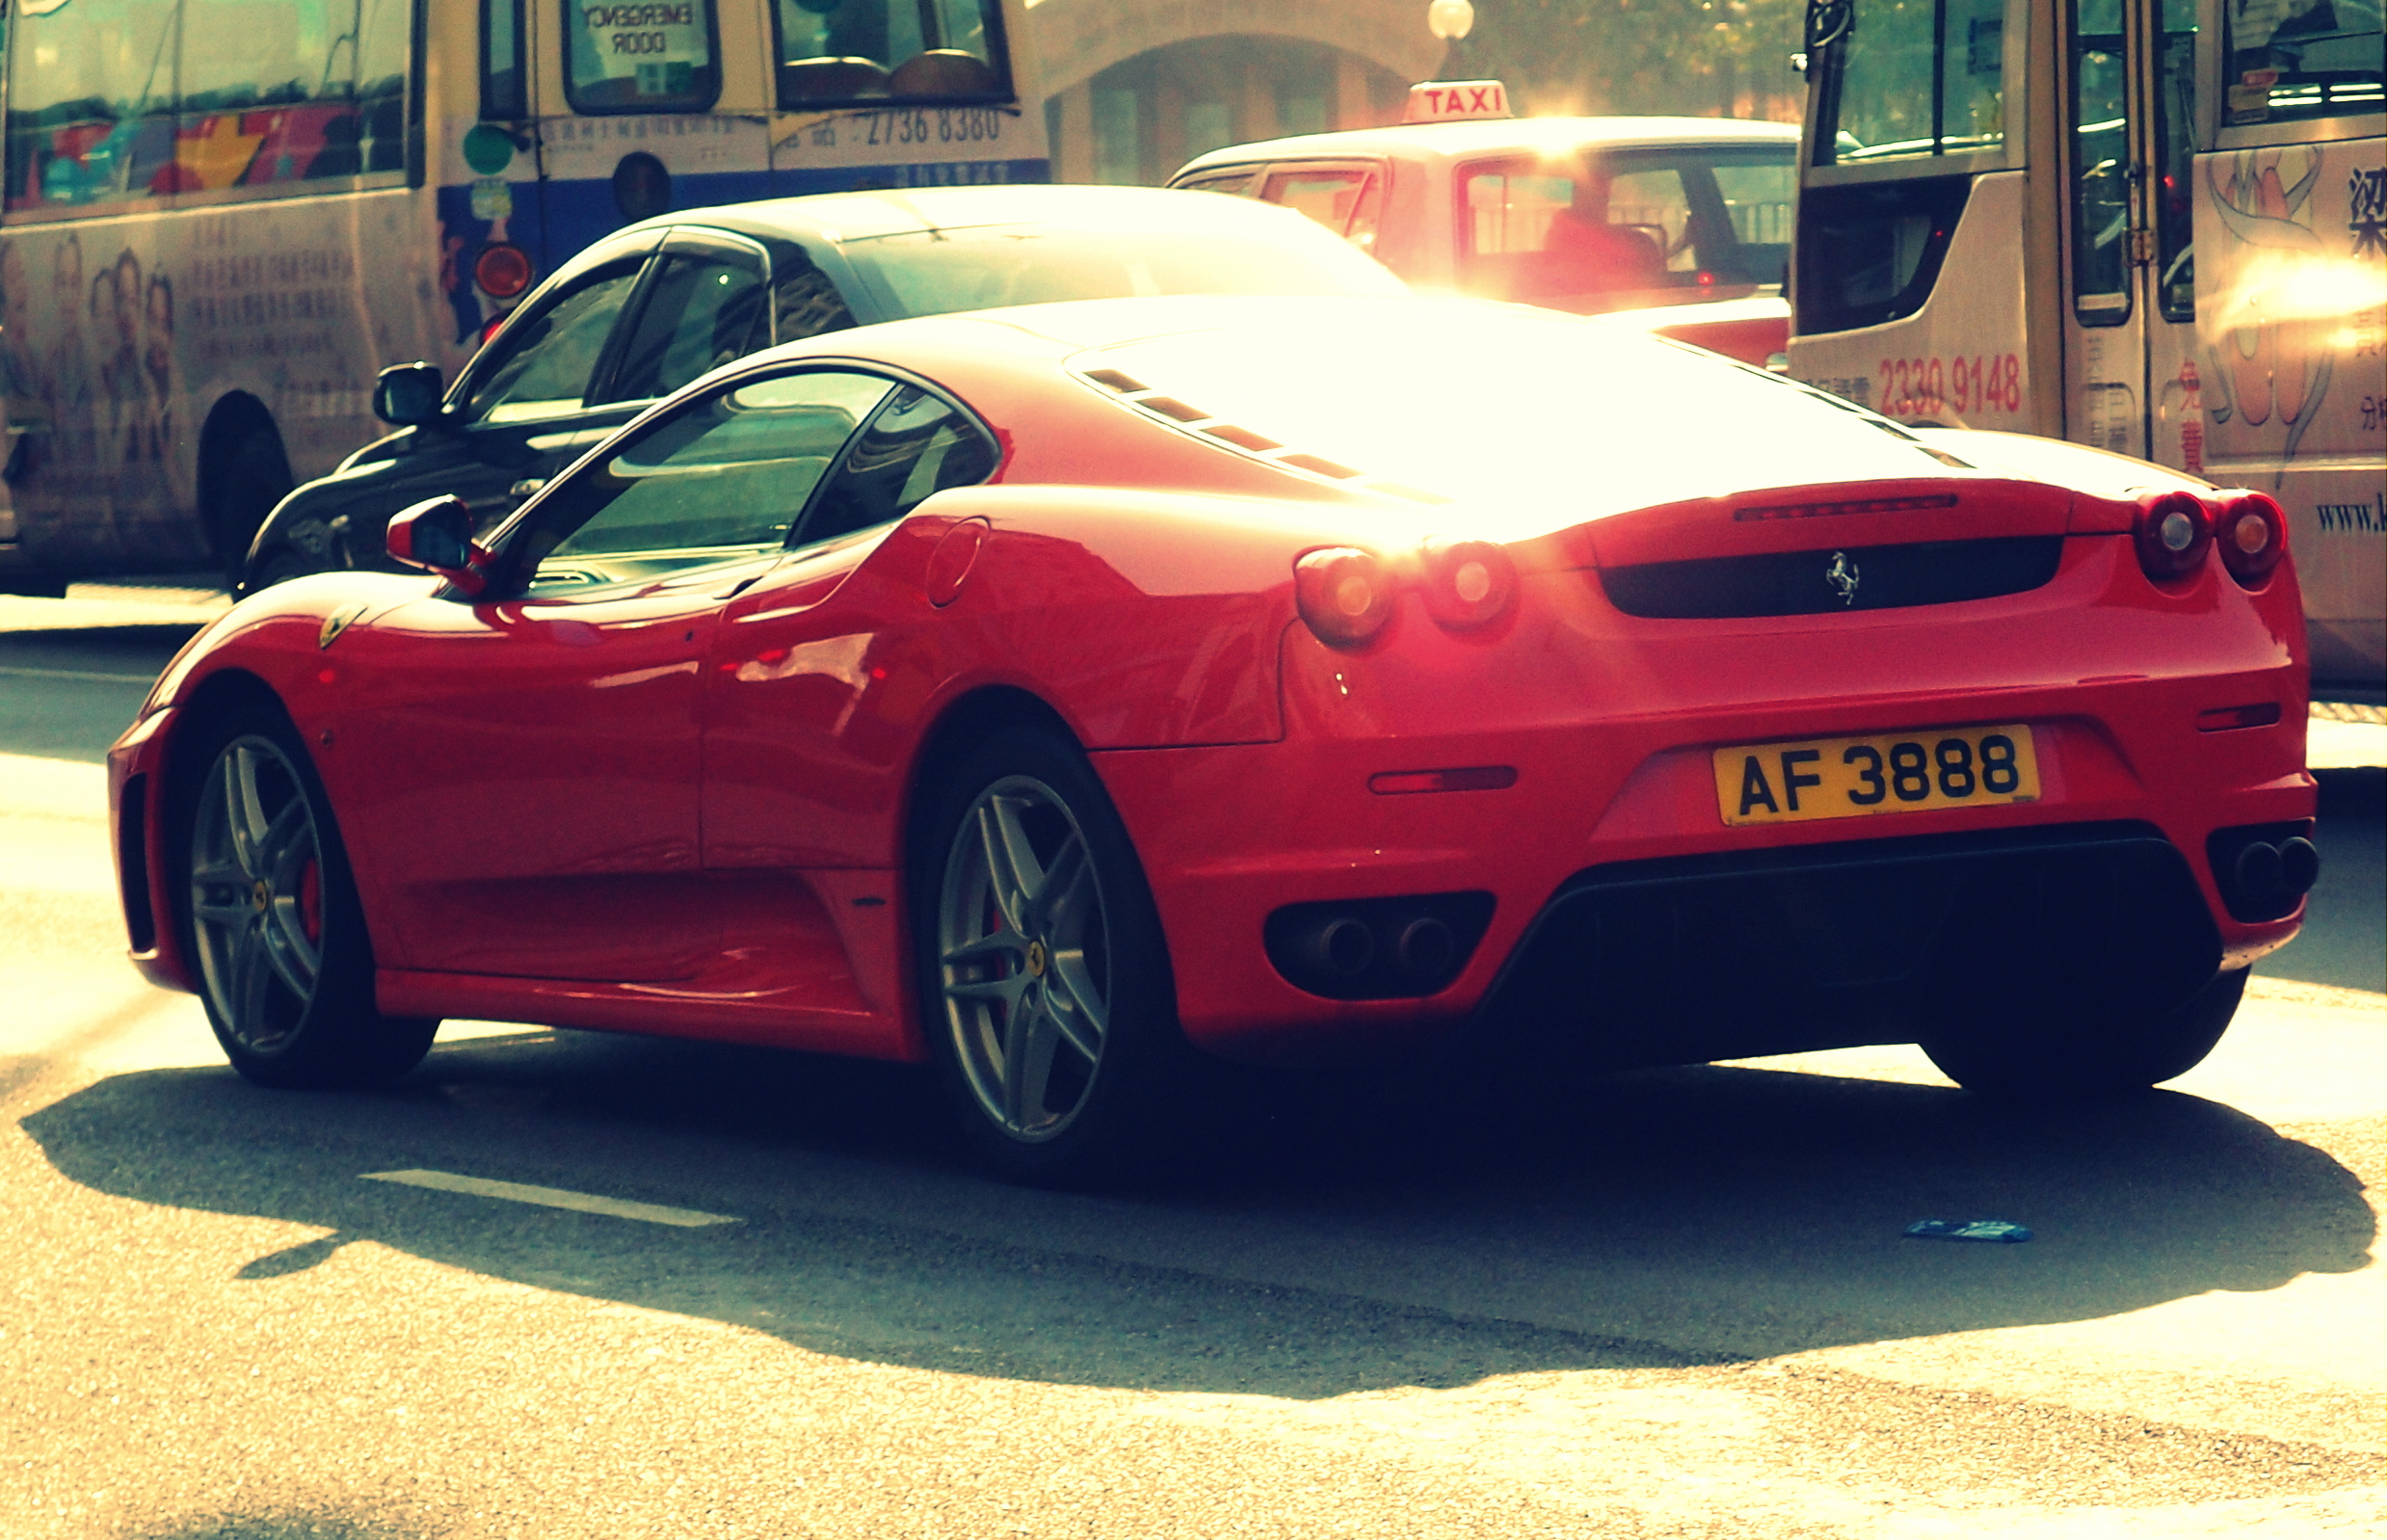 I see this Ferrari all the time